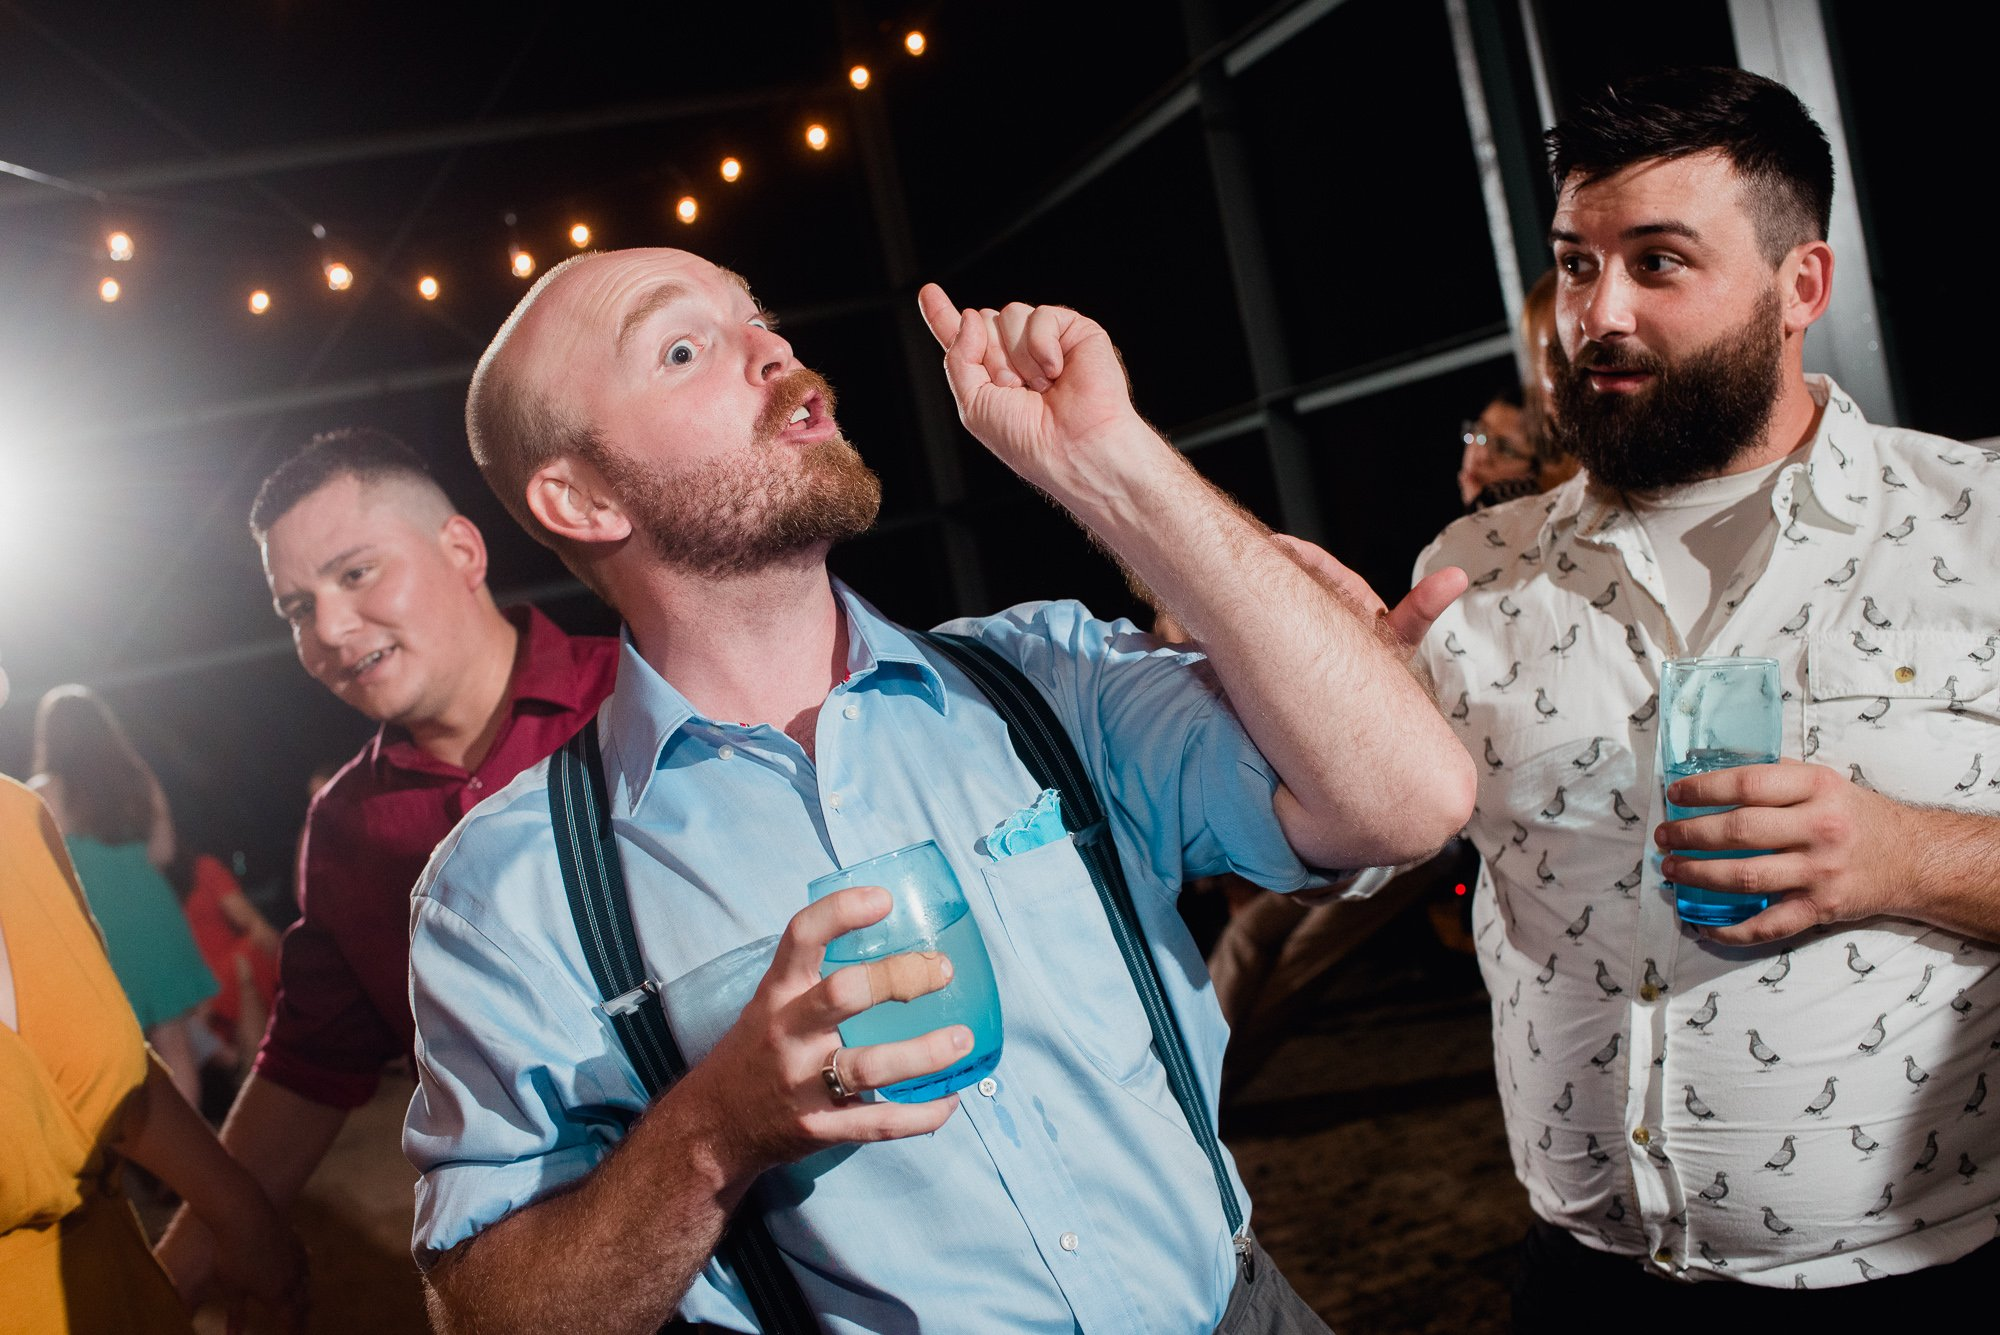 guests singing and dancing at a backyard wedding in austin texas